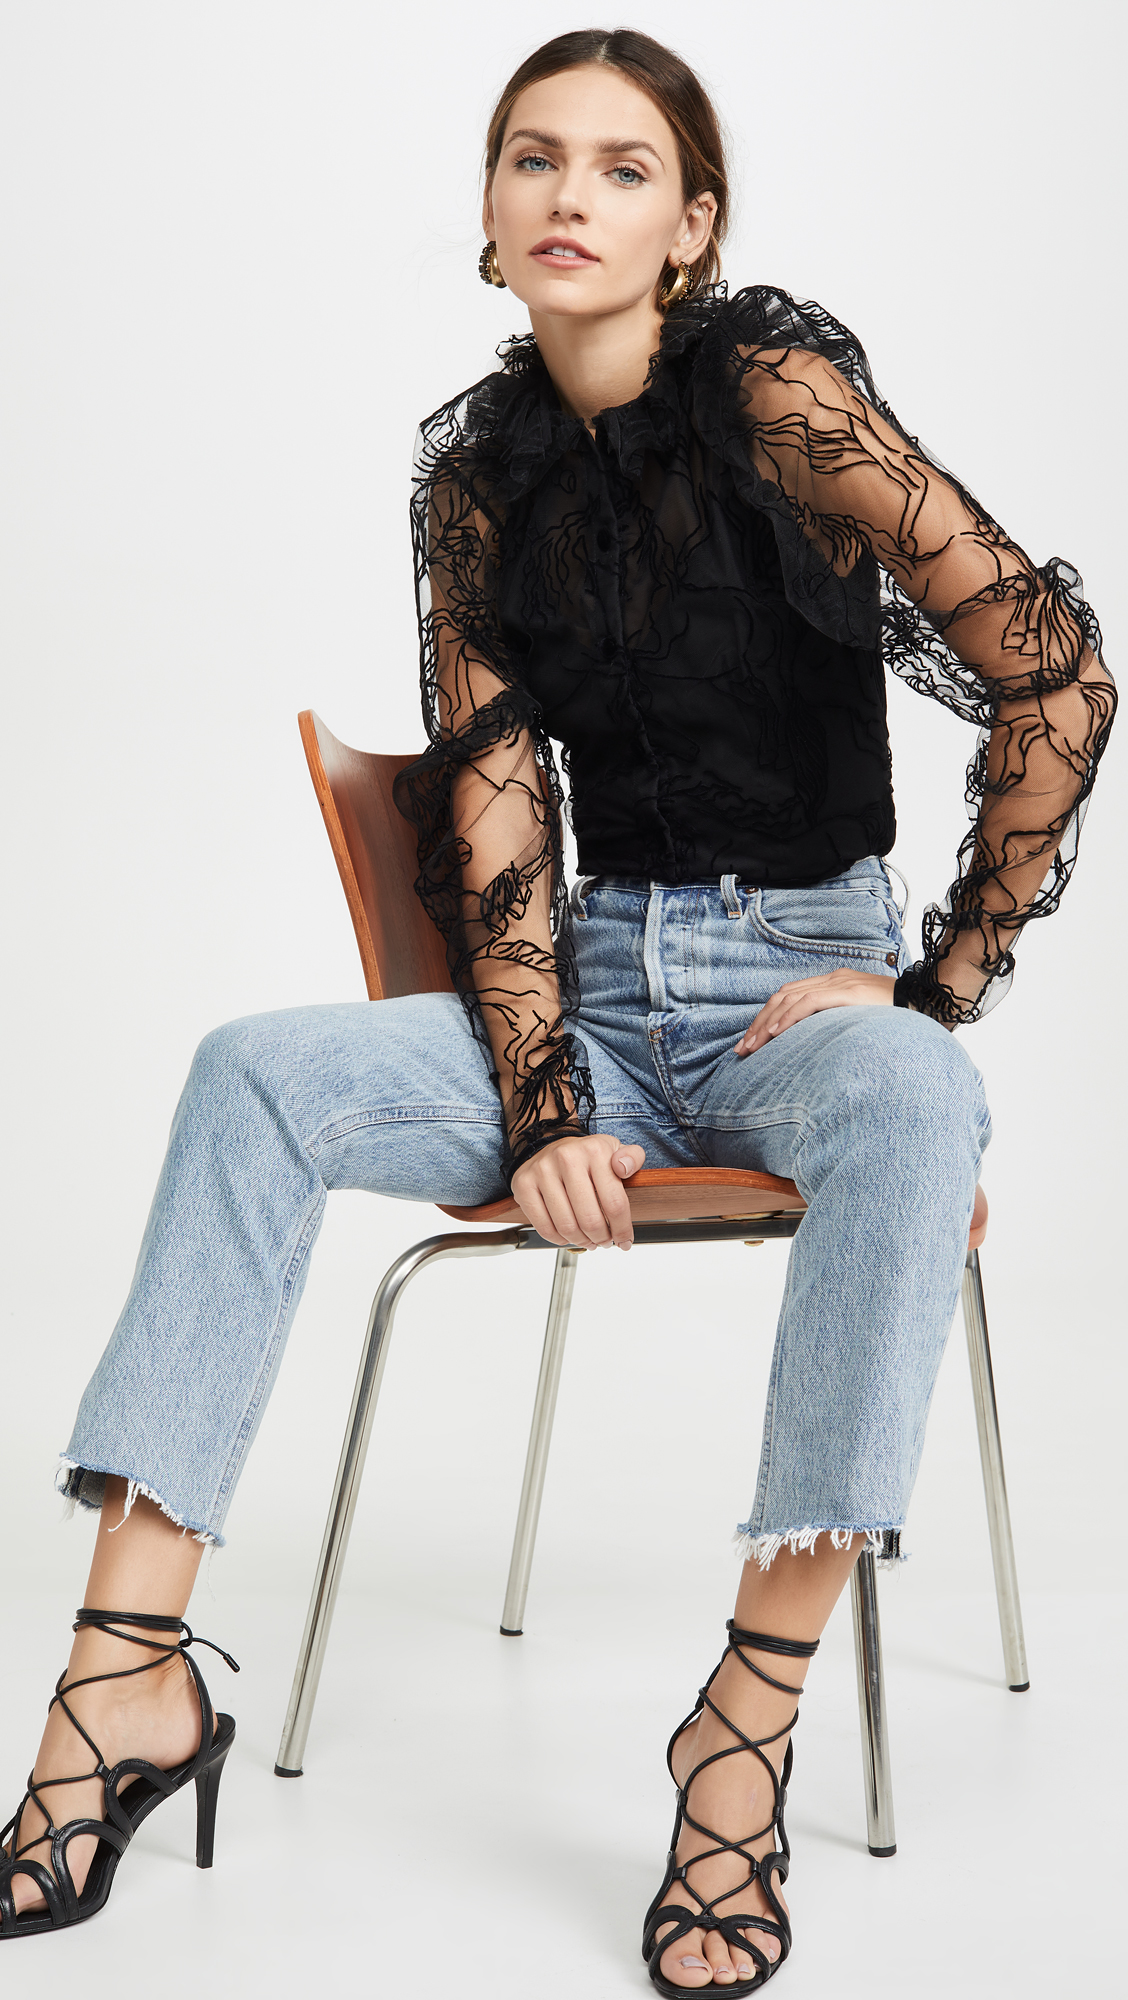 4 Velvet Tops to Dress Up Jeans for Every Party This Season